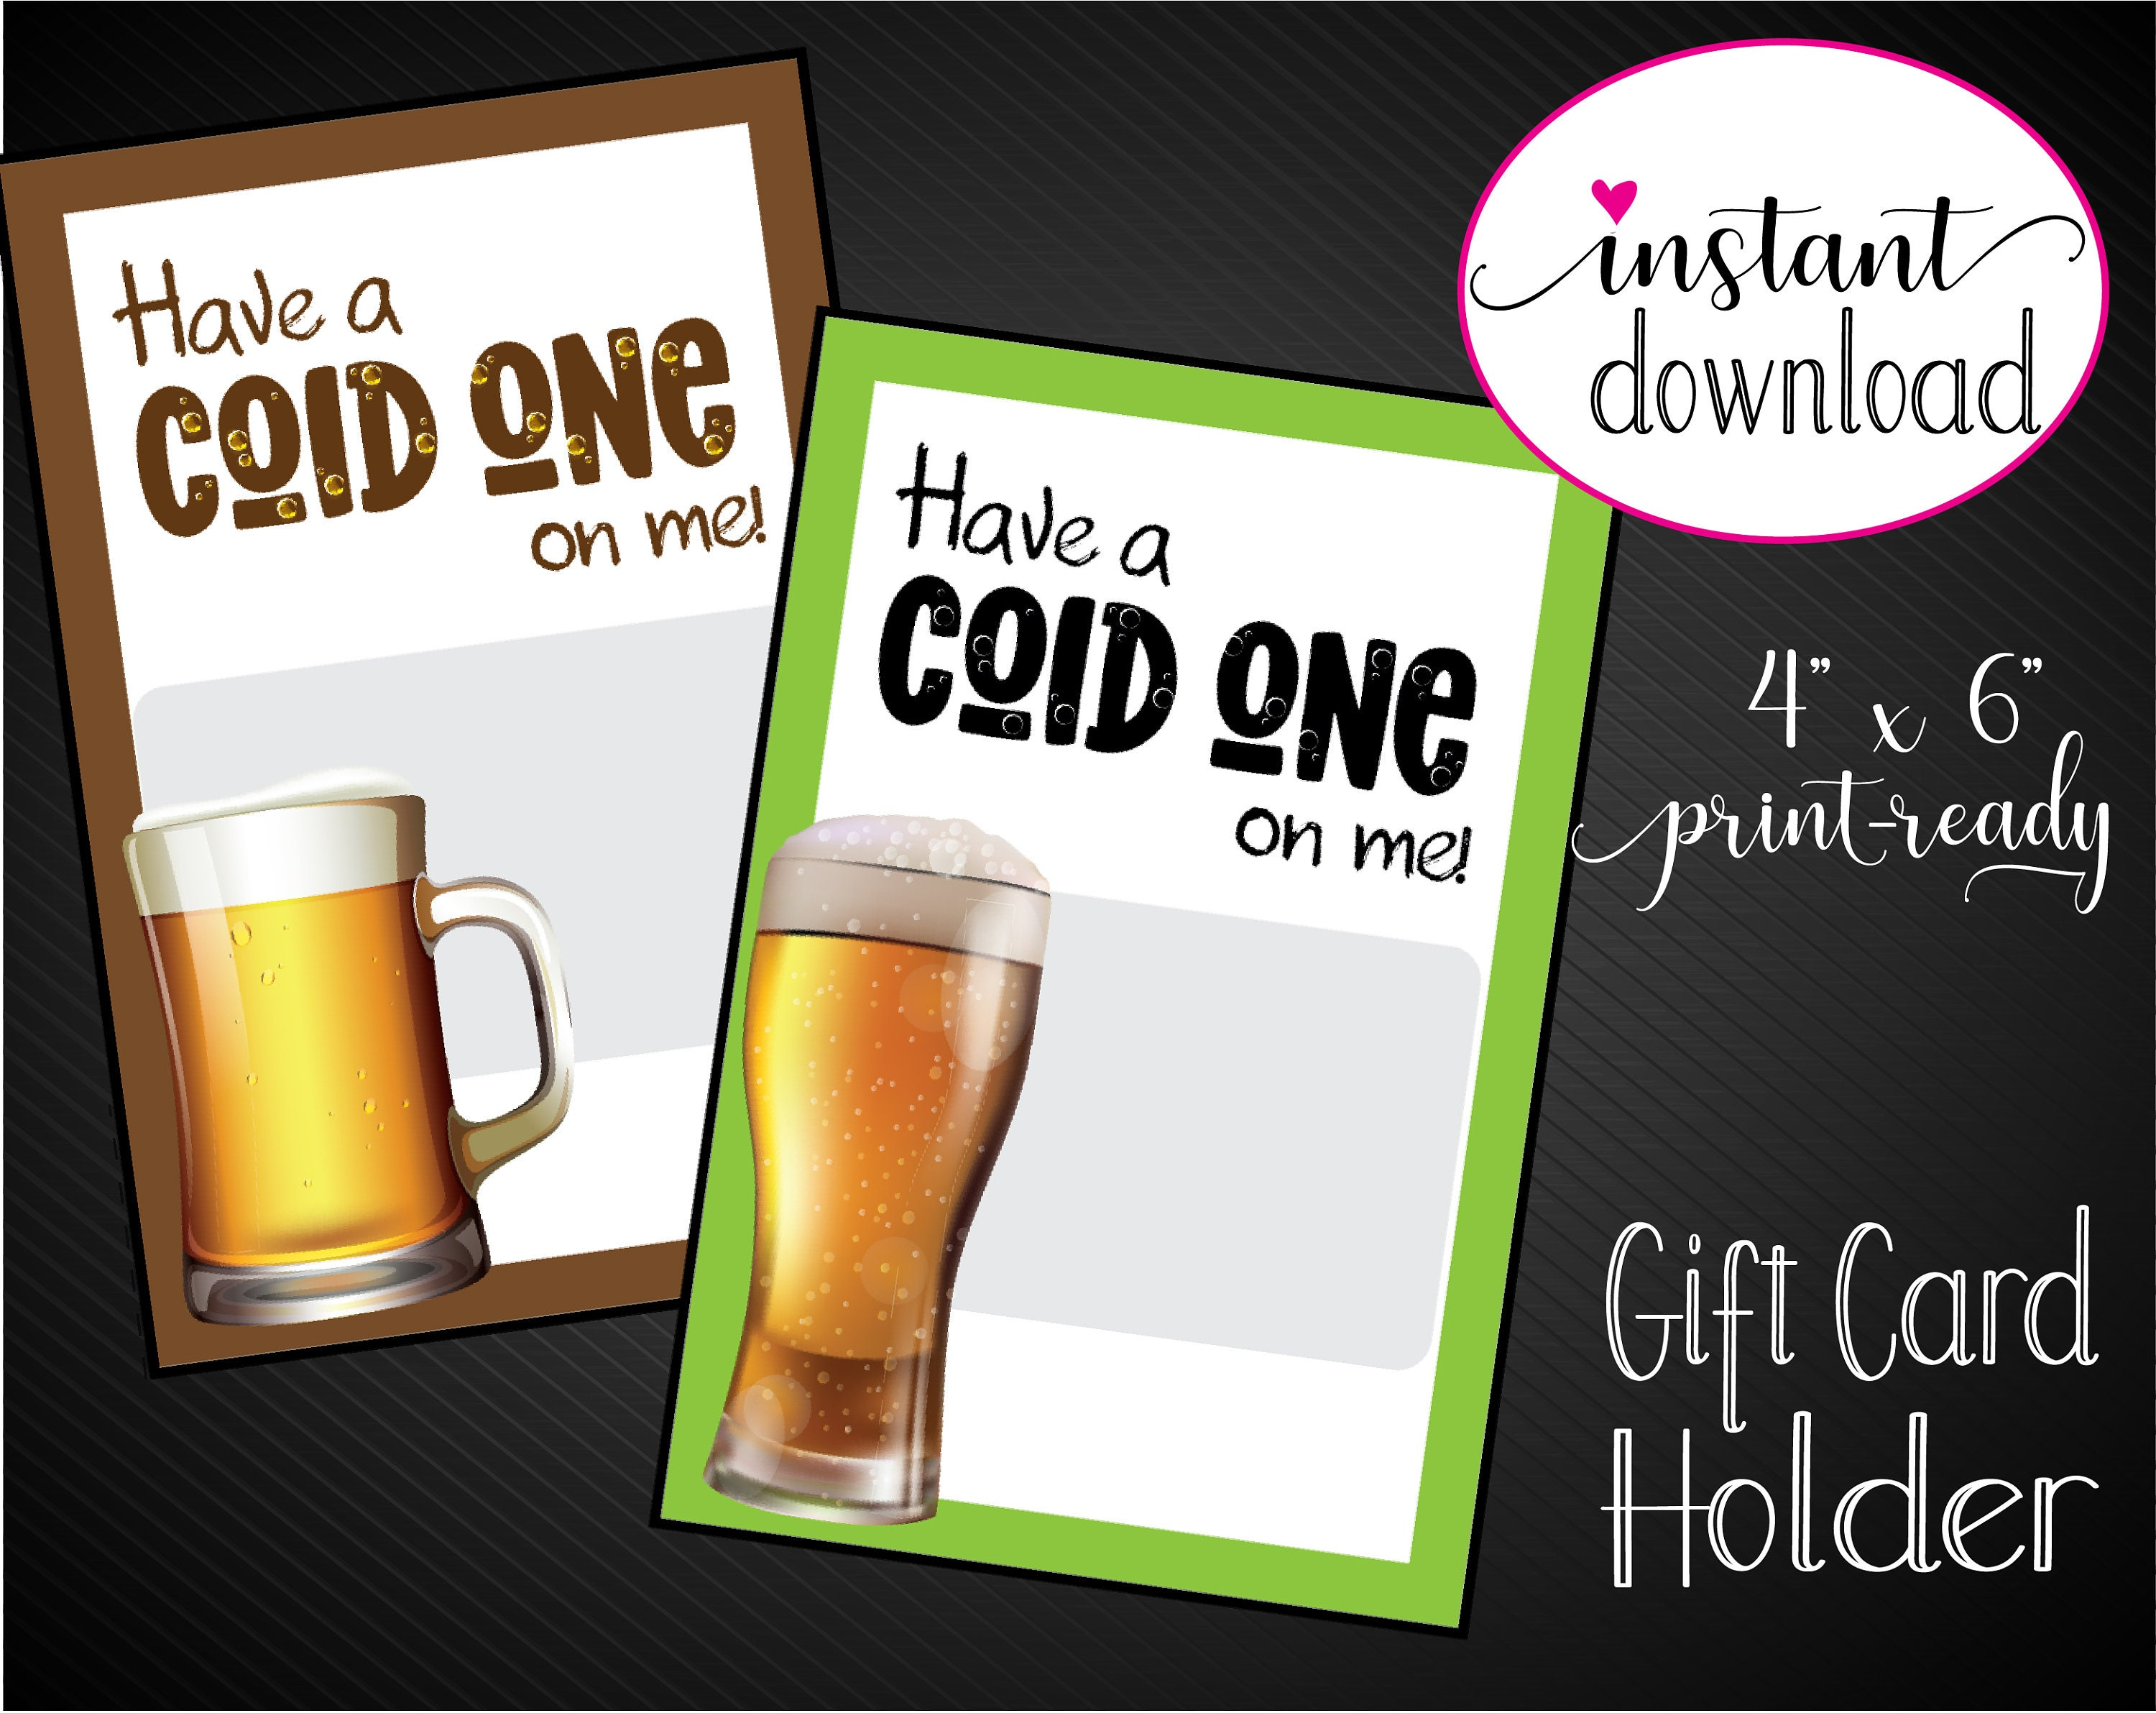 Gift Card Holder: Have A Cold One On Me